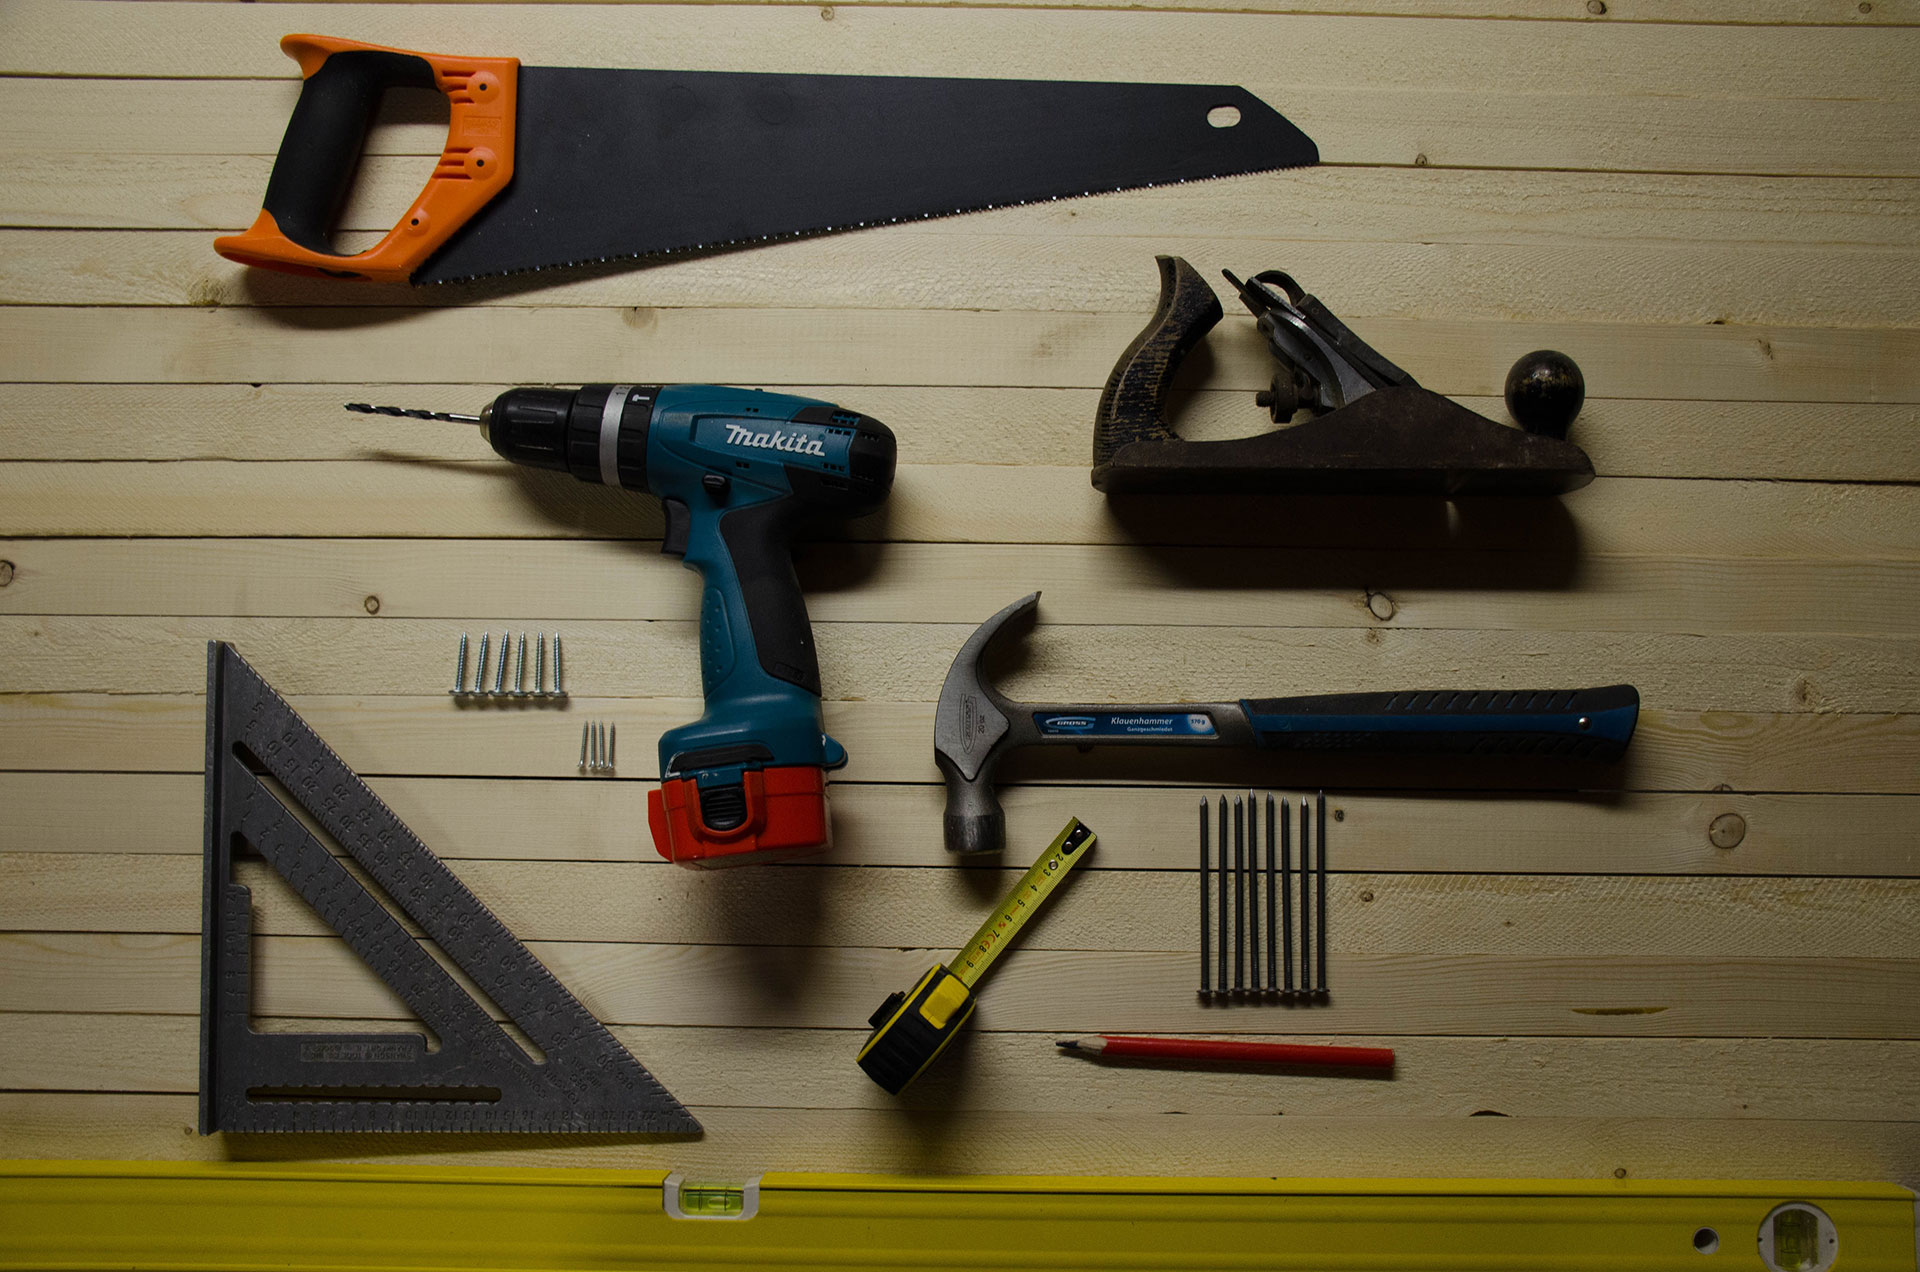 Tools can help with great SEO